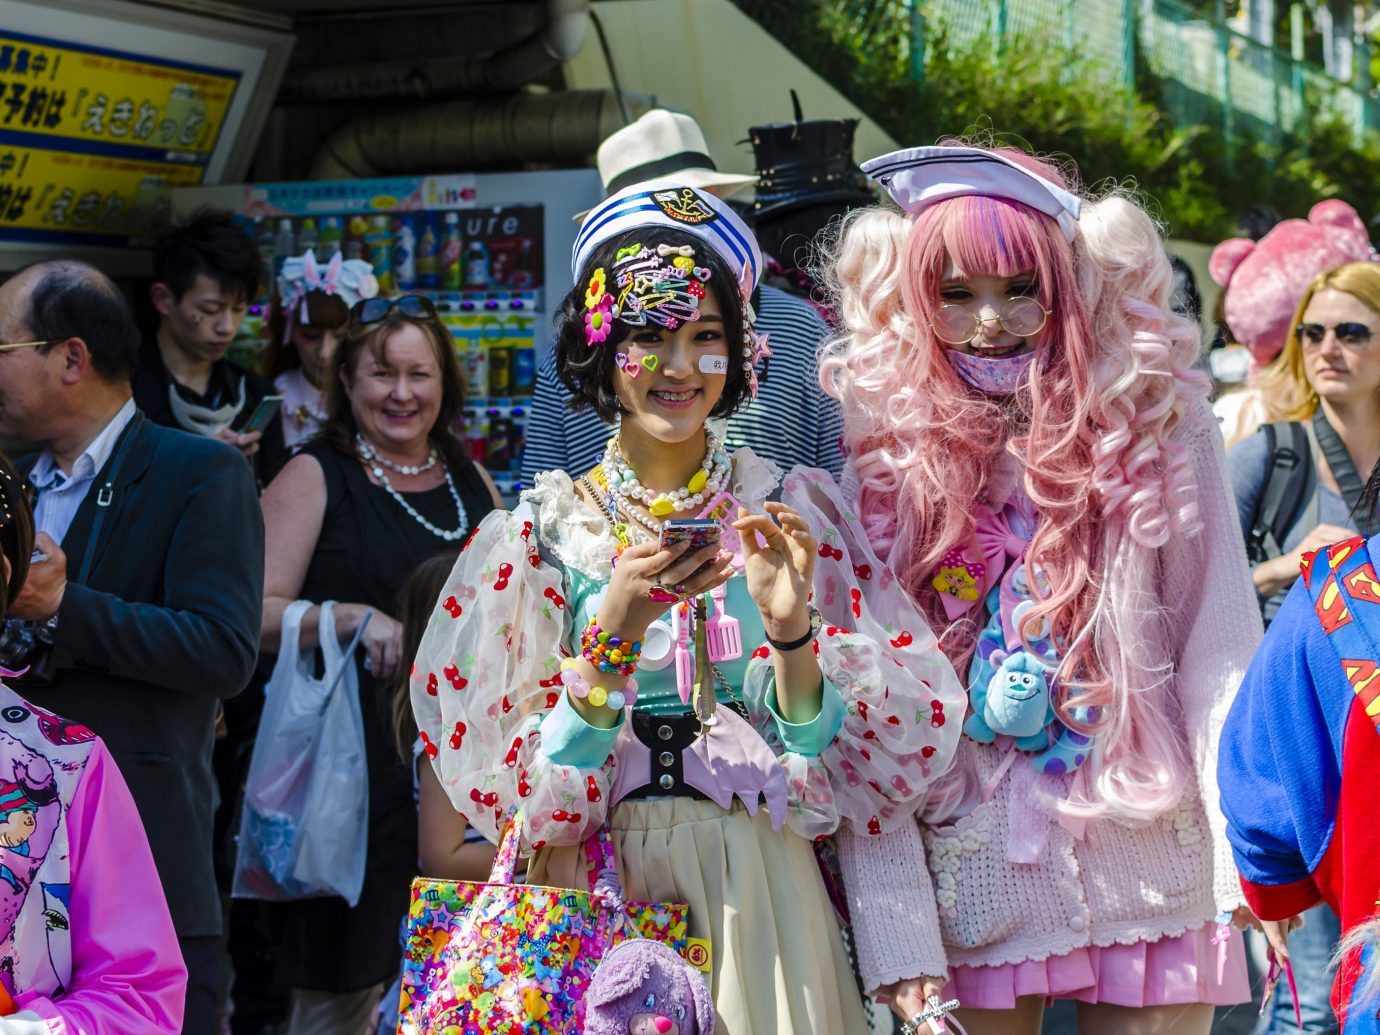 Travel Tips person clothing outdoor Sport dancer costume carnival group festival event people anime posing several